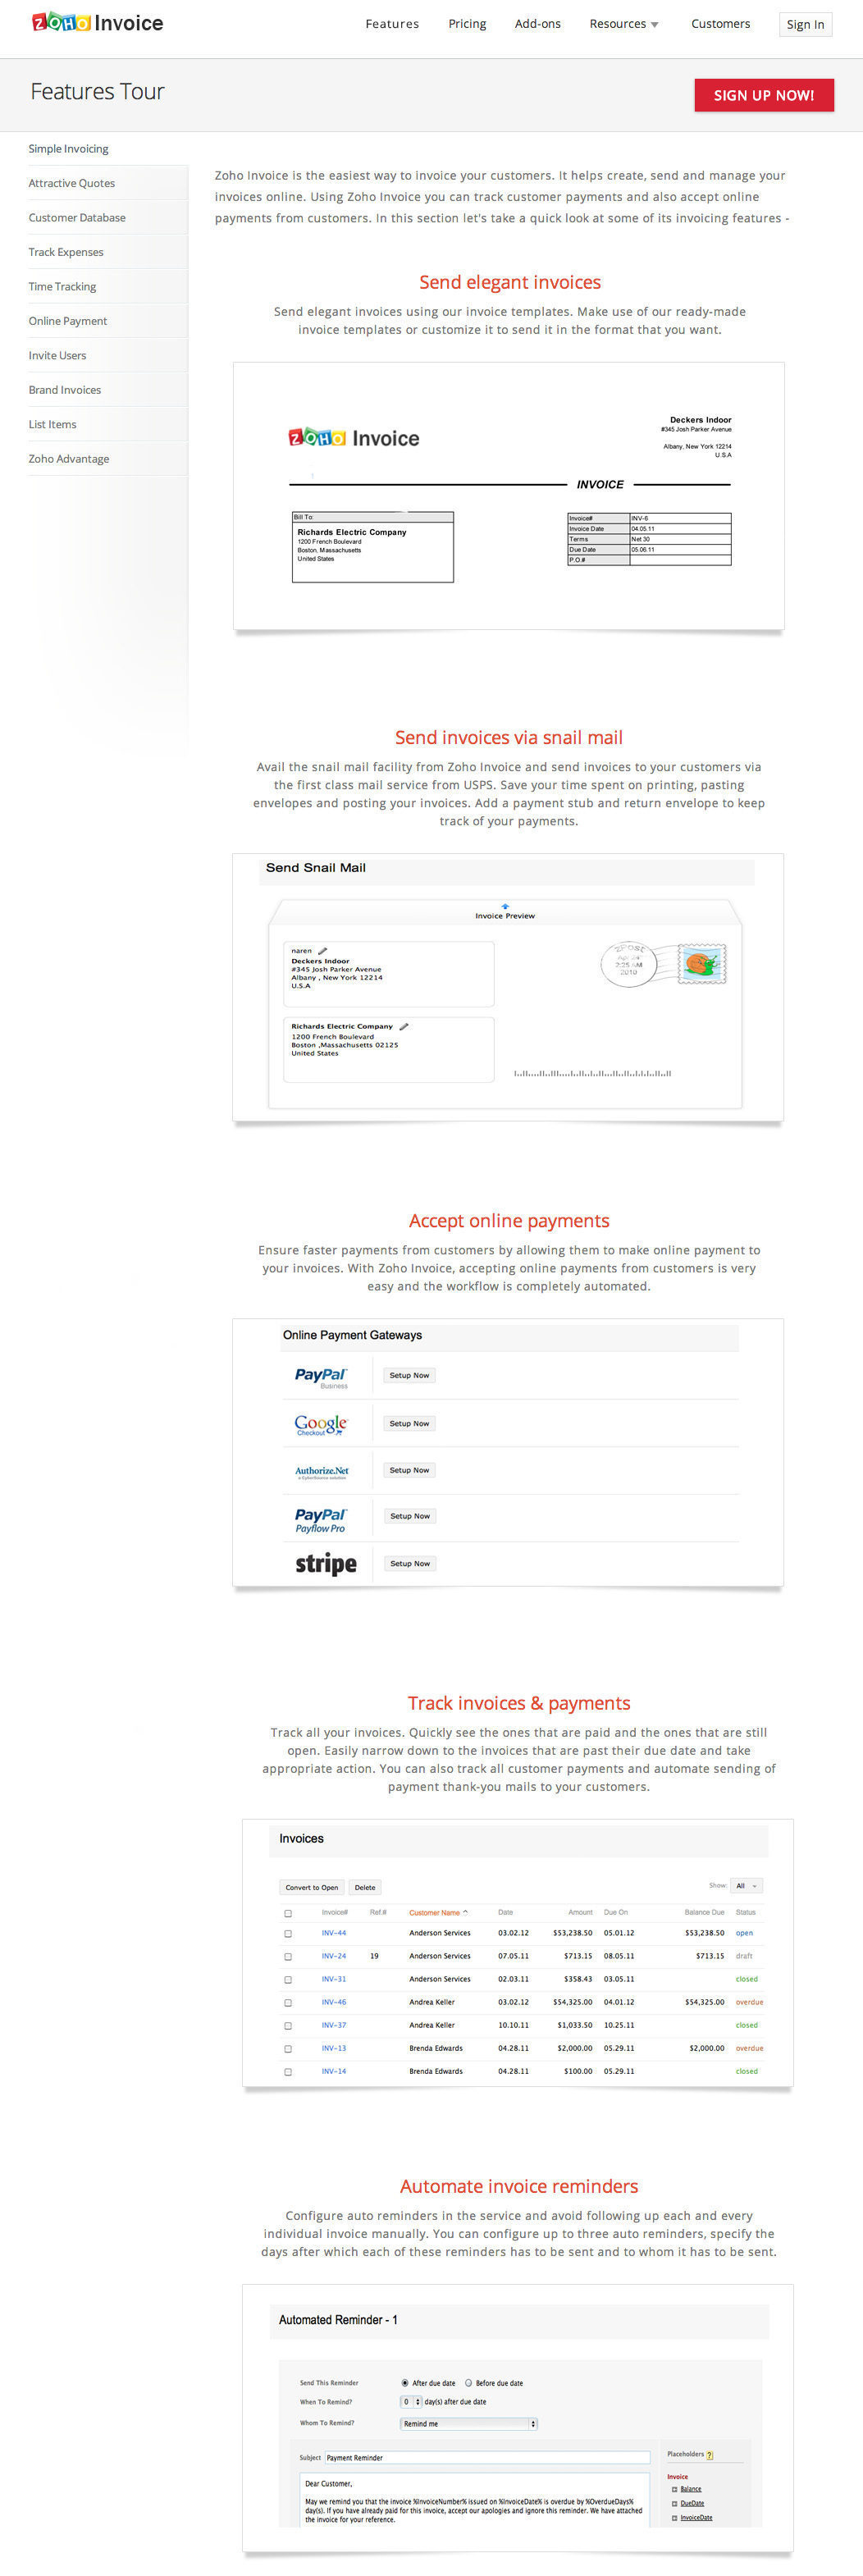 Reliefworkersus  Splendid Top  Complaints And Reviews About Zoho Invoice With Interesting Zoho Invoice Pricing Zoho Invoice  Simple Invoicing  With Charming Processing Invoices In Sap Also How To Make A Good Invoice In Addition Invoice Terms And Conditions And When To Invoice A Customer As Well As Online Free Invoice Templates Additionally Invoice Reminder Template From Consumeraffairscom With Reliefworkersus  Interesting Top  Complaints And Reviews About Zoho Invoice With Charming Zoho Invoice Pricing Zoho Invoice  Simple Invoicing  And Splendid Processing Invoices In Sap Also How To Make A Good Invoice In Addition Invoice Terms And Conditions From Consumeraffairscom